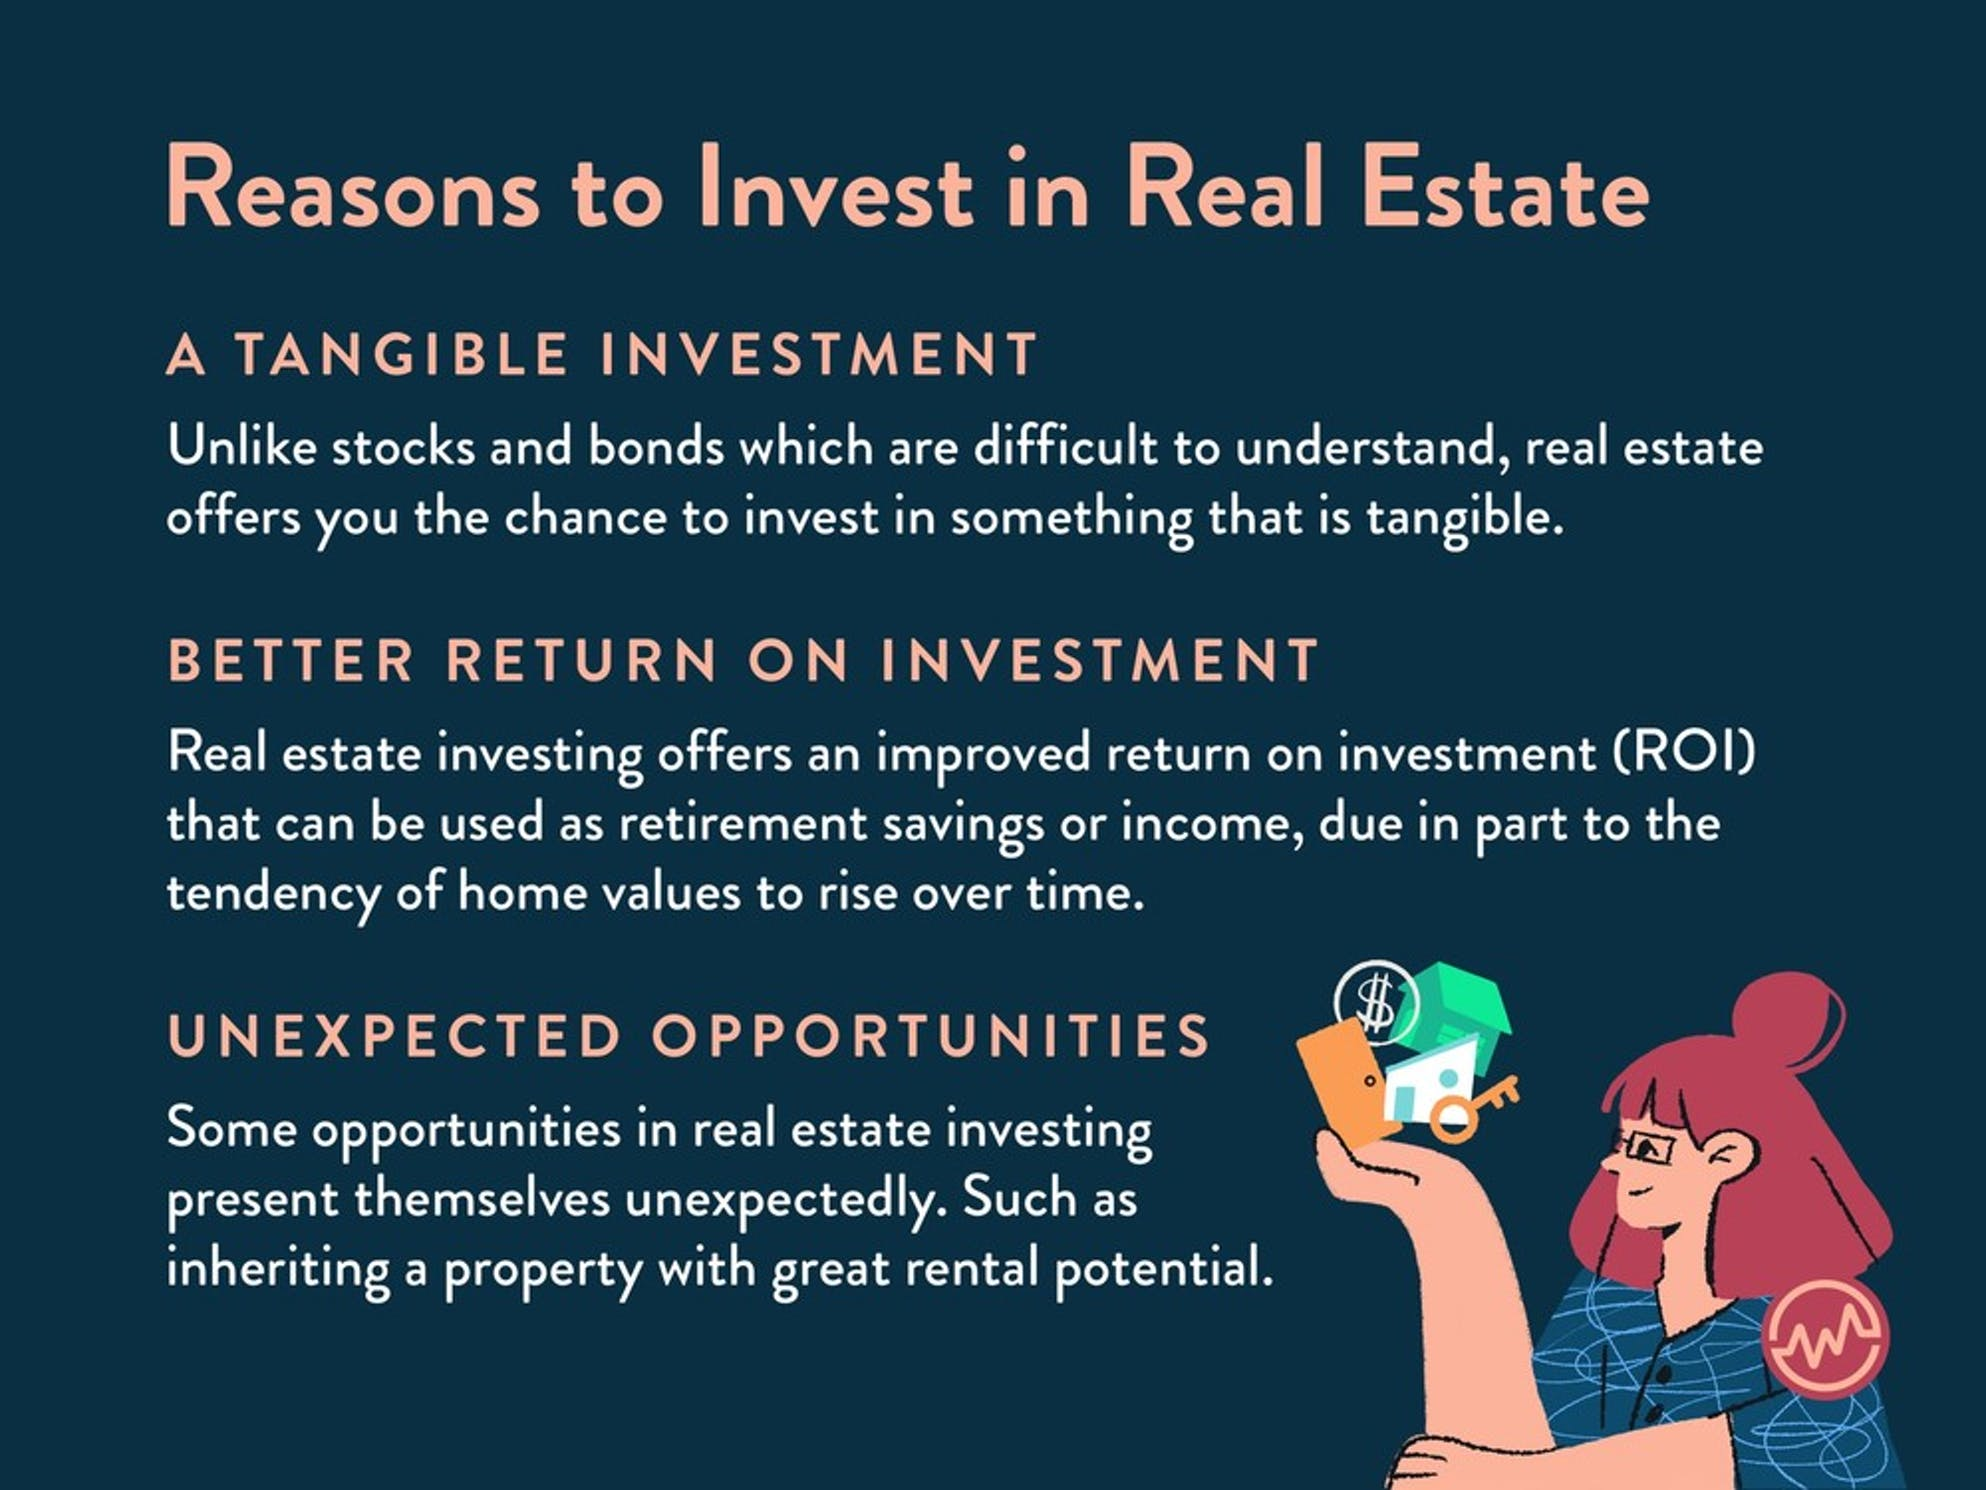 Reasons to Invest in Real Estate